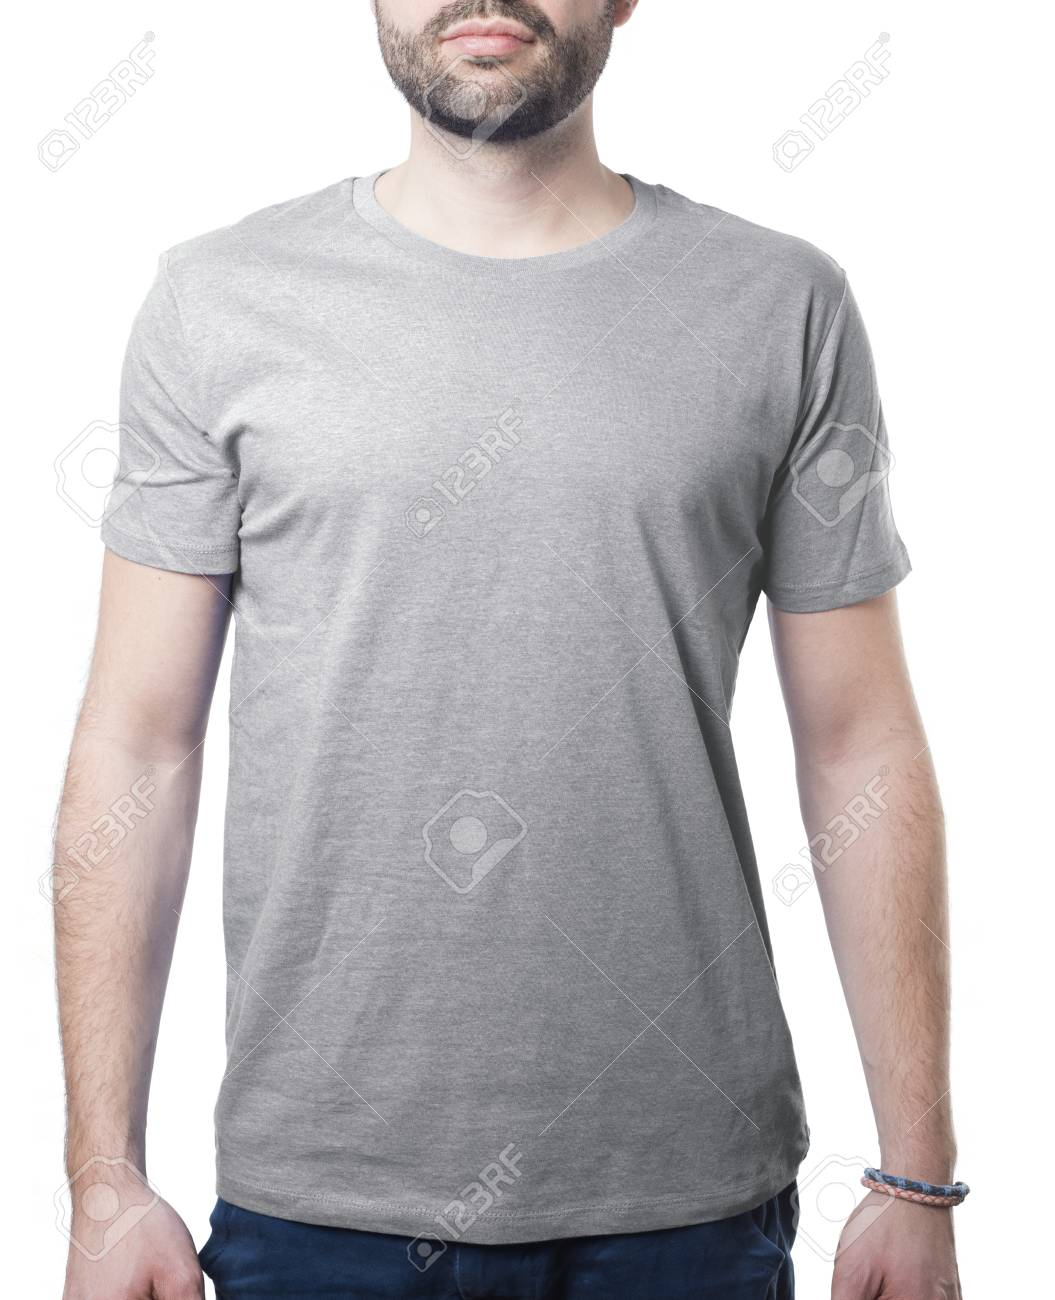 Grey Tshirt Template Of Man Waring Blank Classic Shirt Isolated